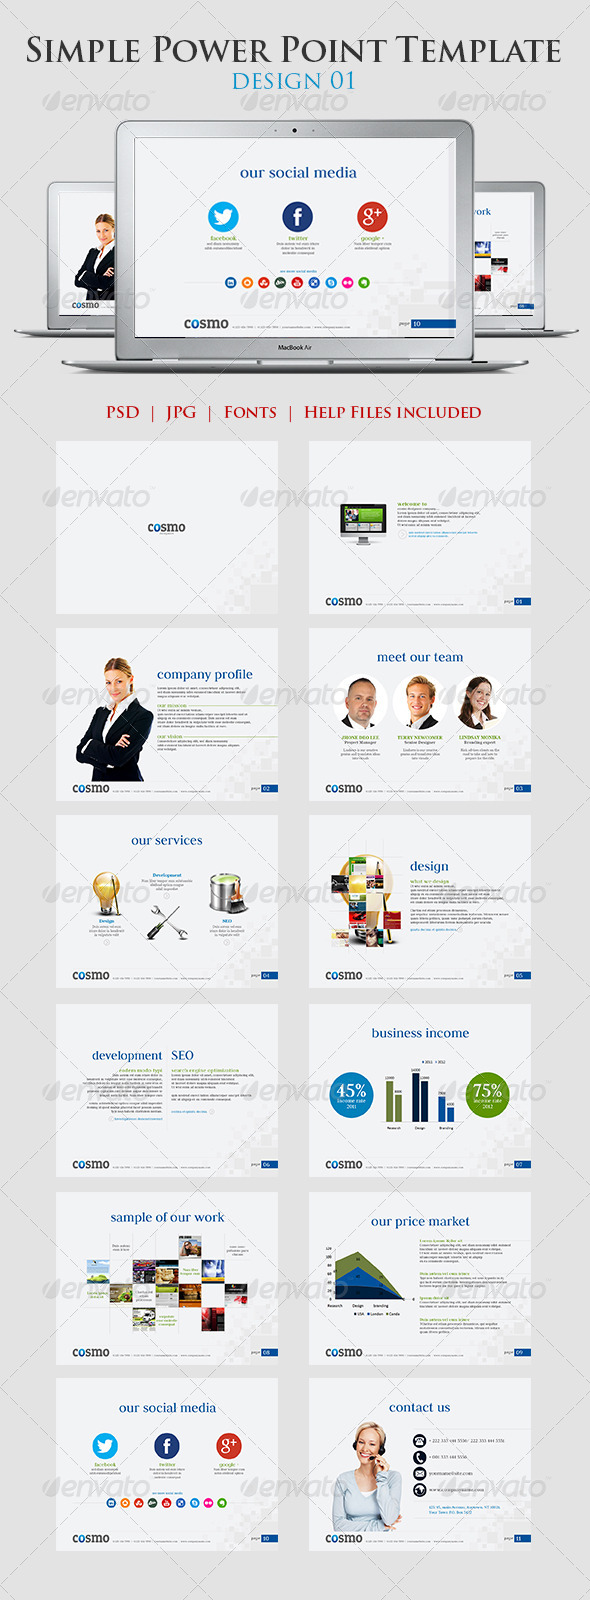 GraphicRiver Simple Power point Template Design 01 5106496